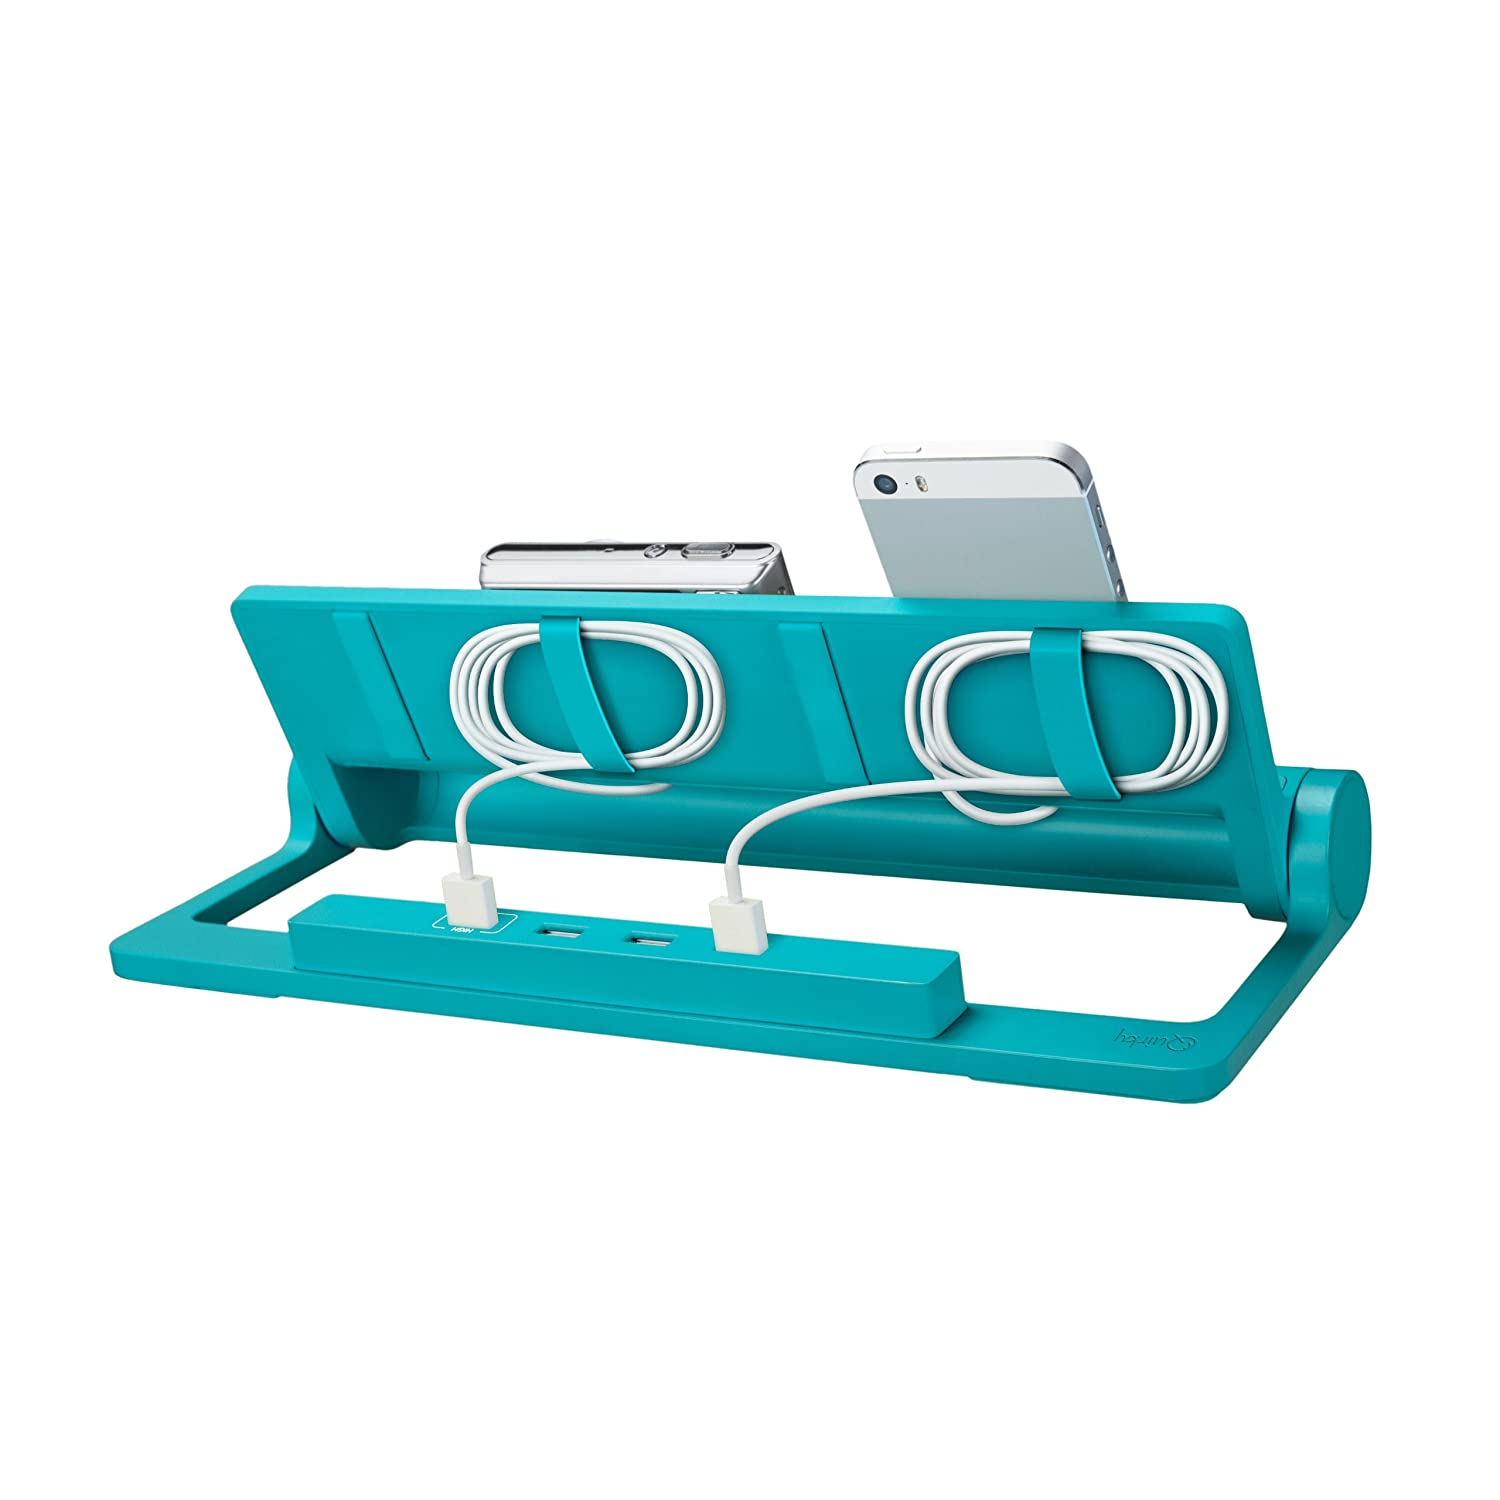 Teal Quirky PCVG3-TL01 Converge Universal USB Docking Station